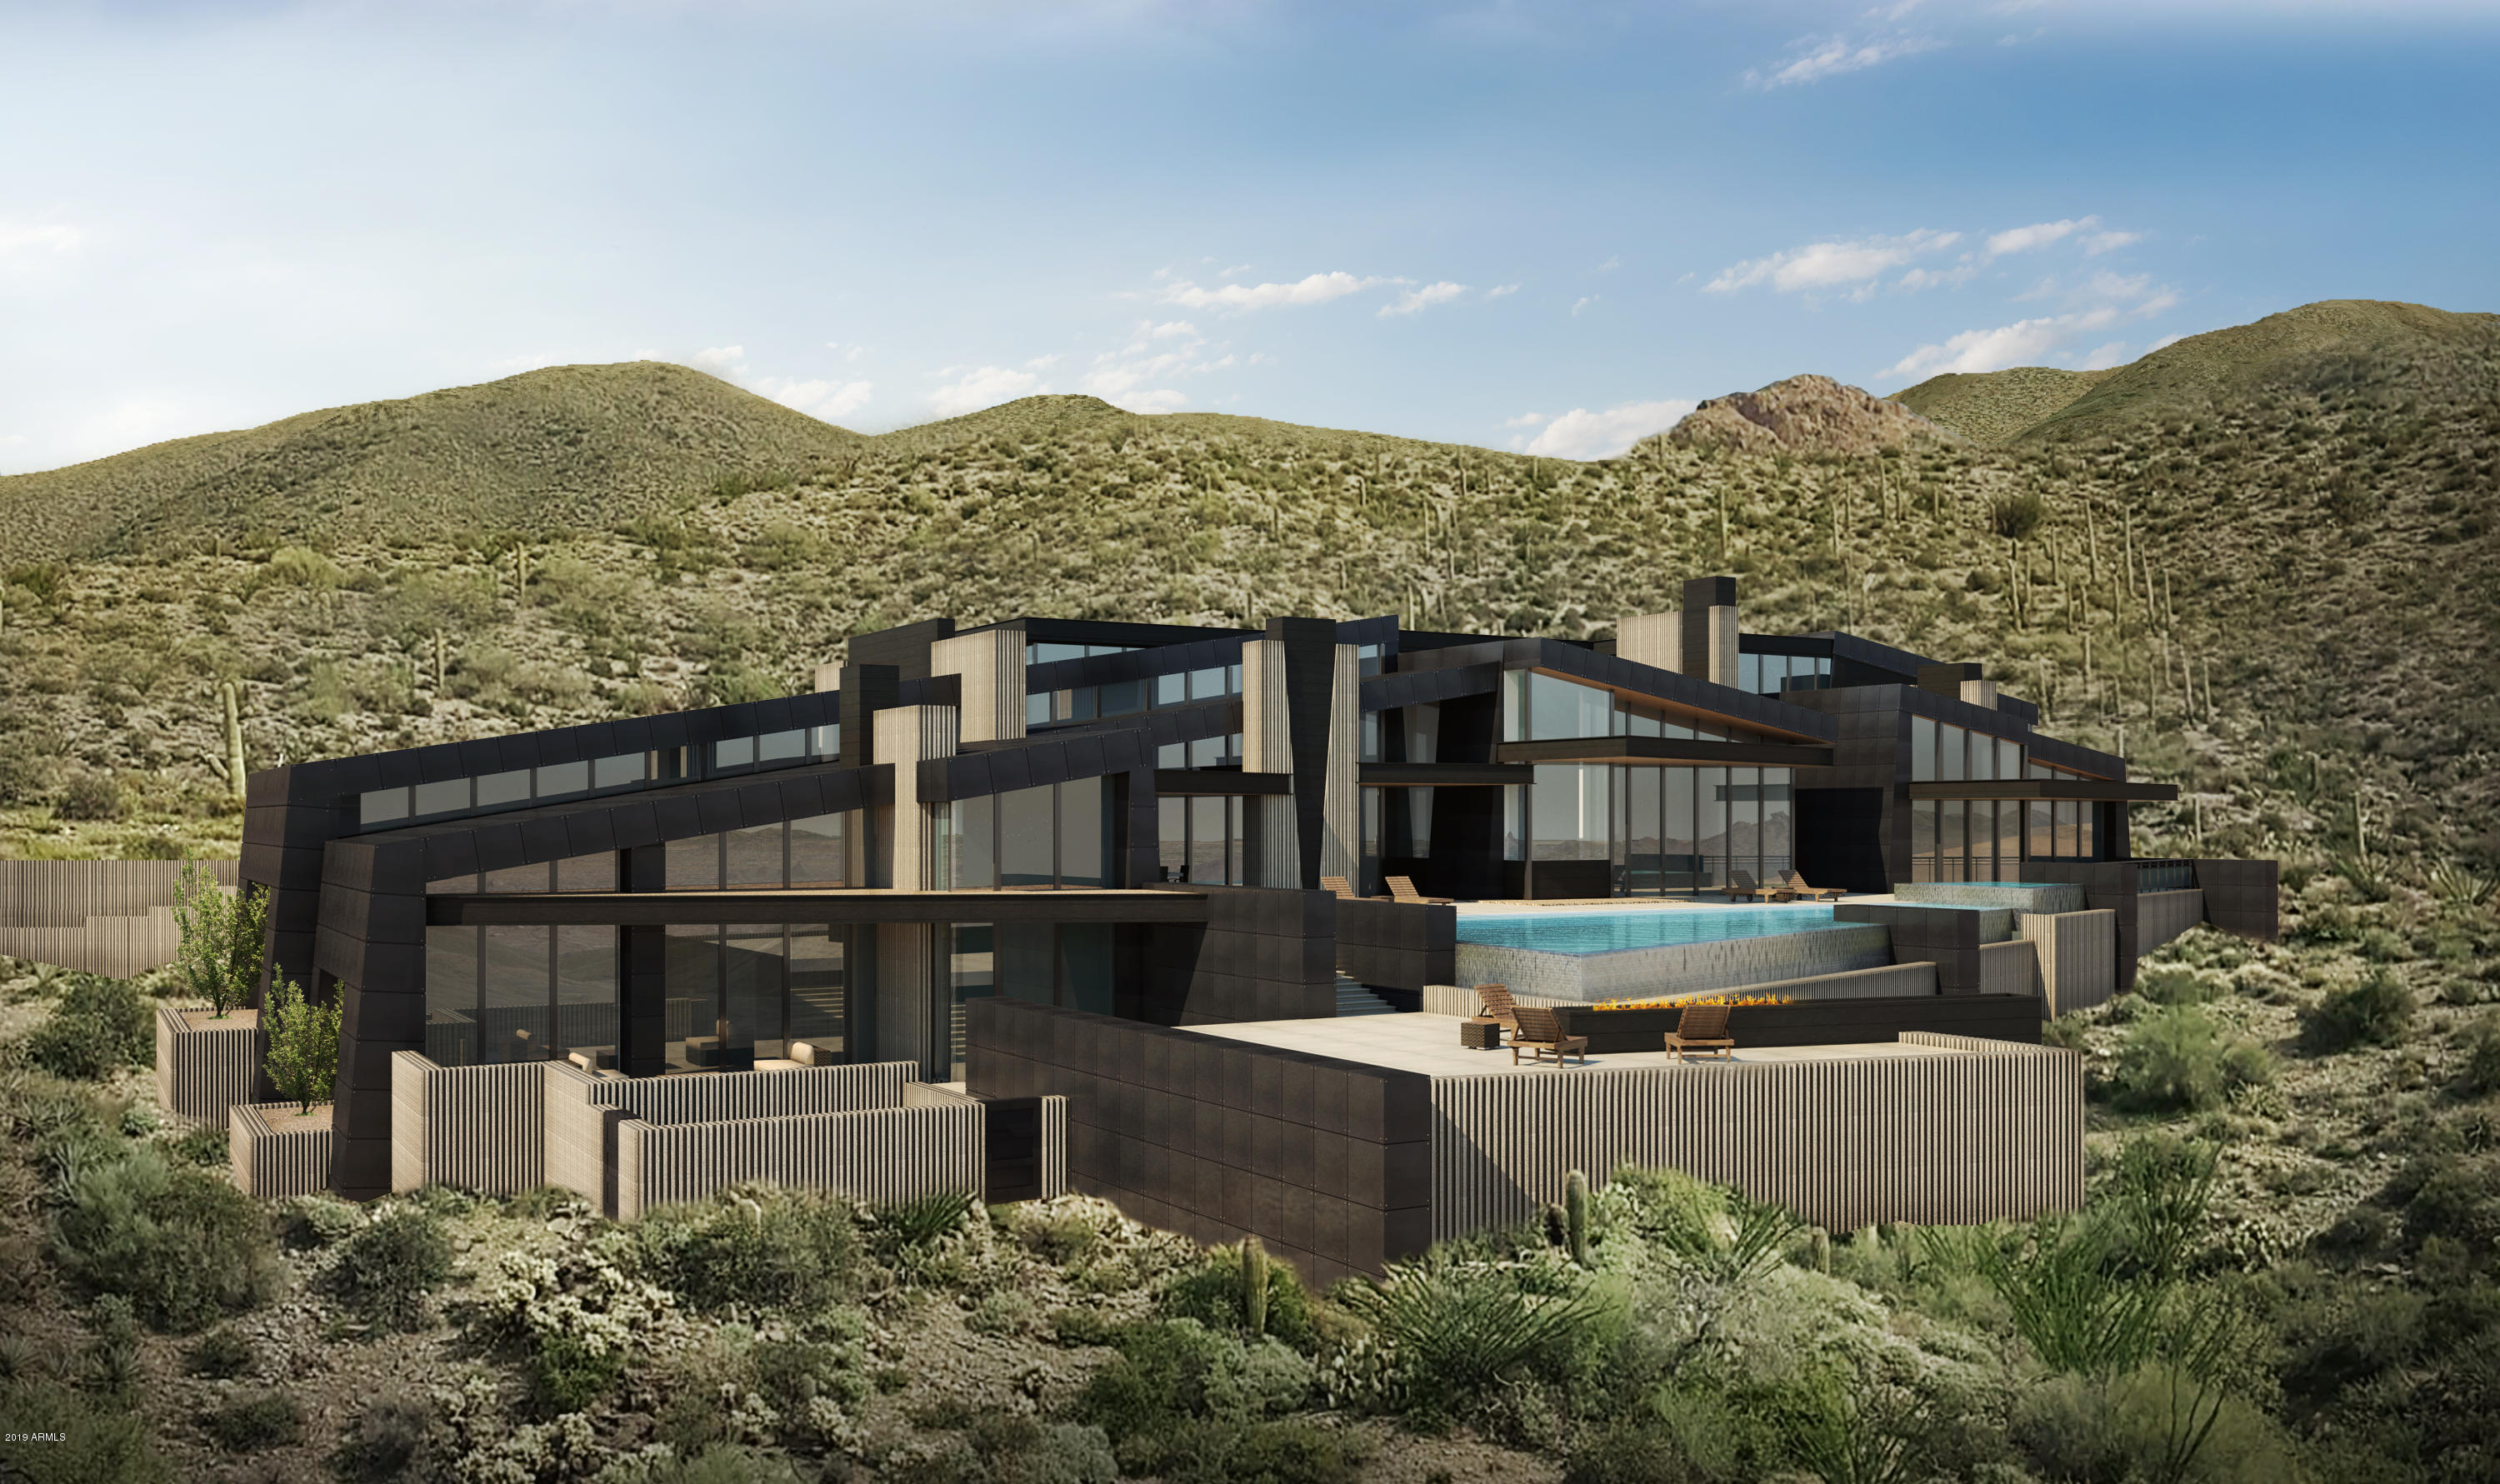 9661 E Cintarosa Pass, Desert Mountain, Arizona